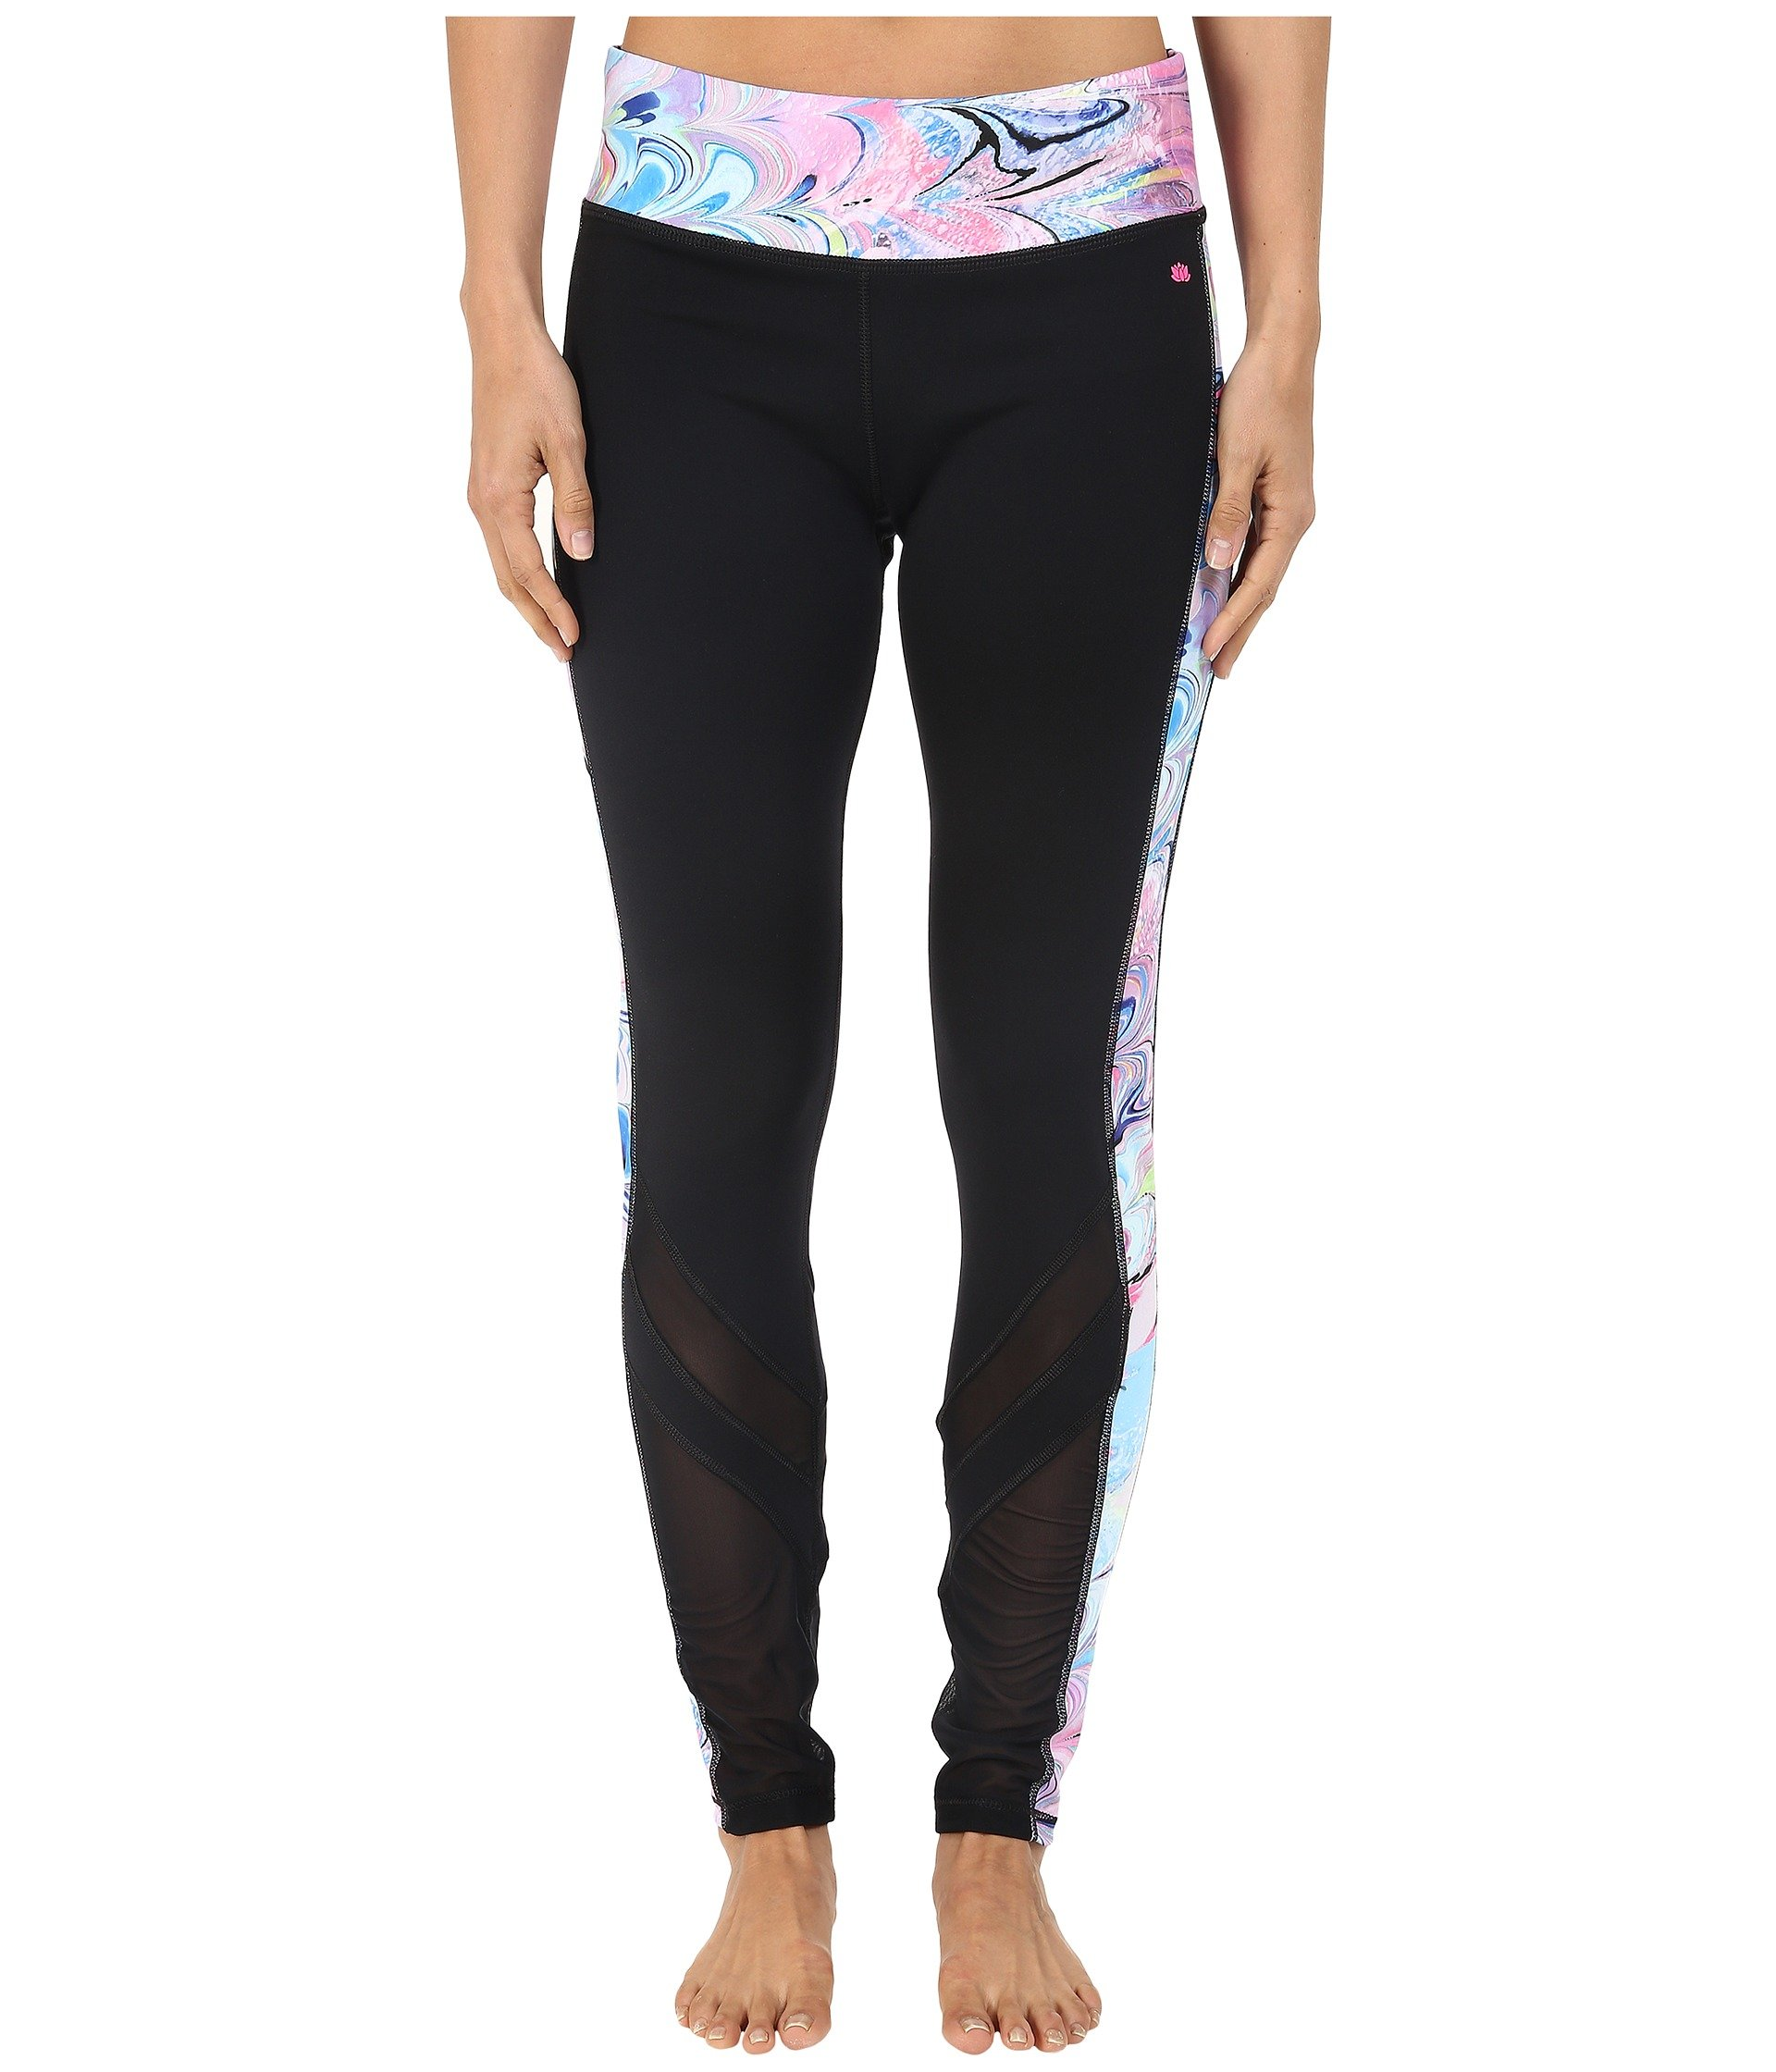 Lotus leggings coupon code